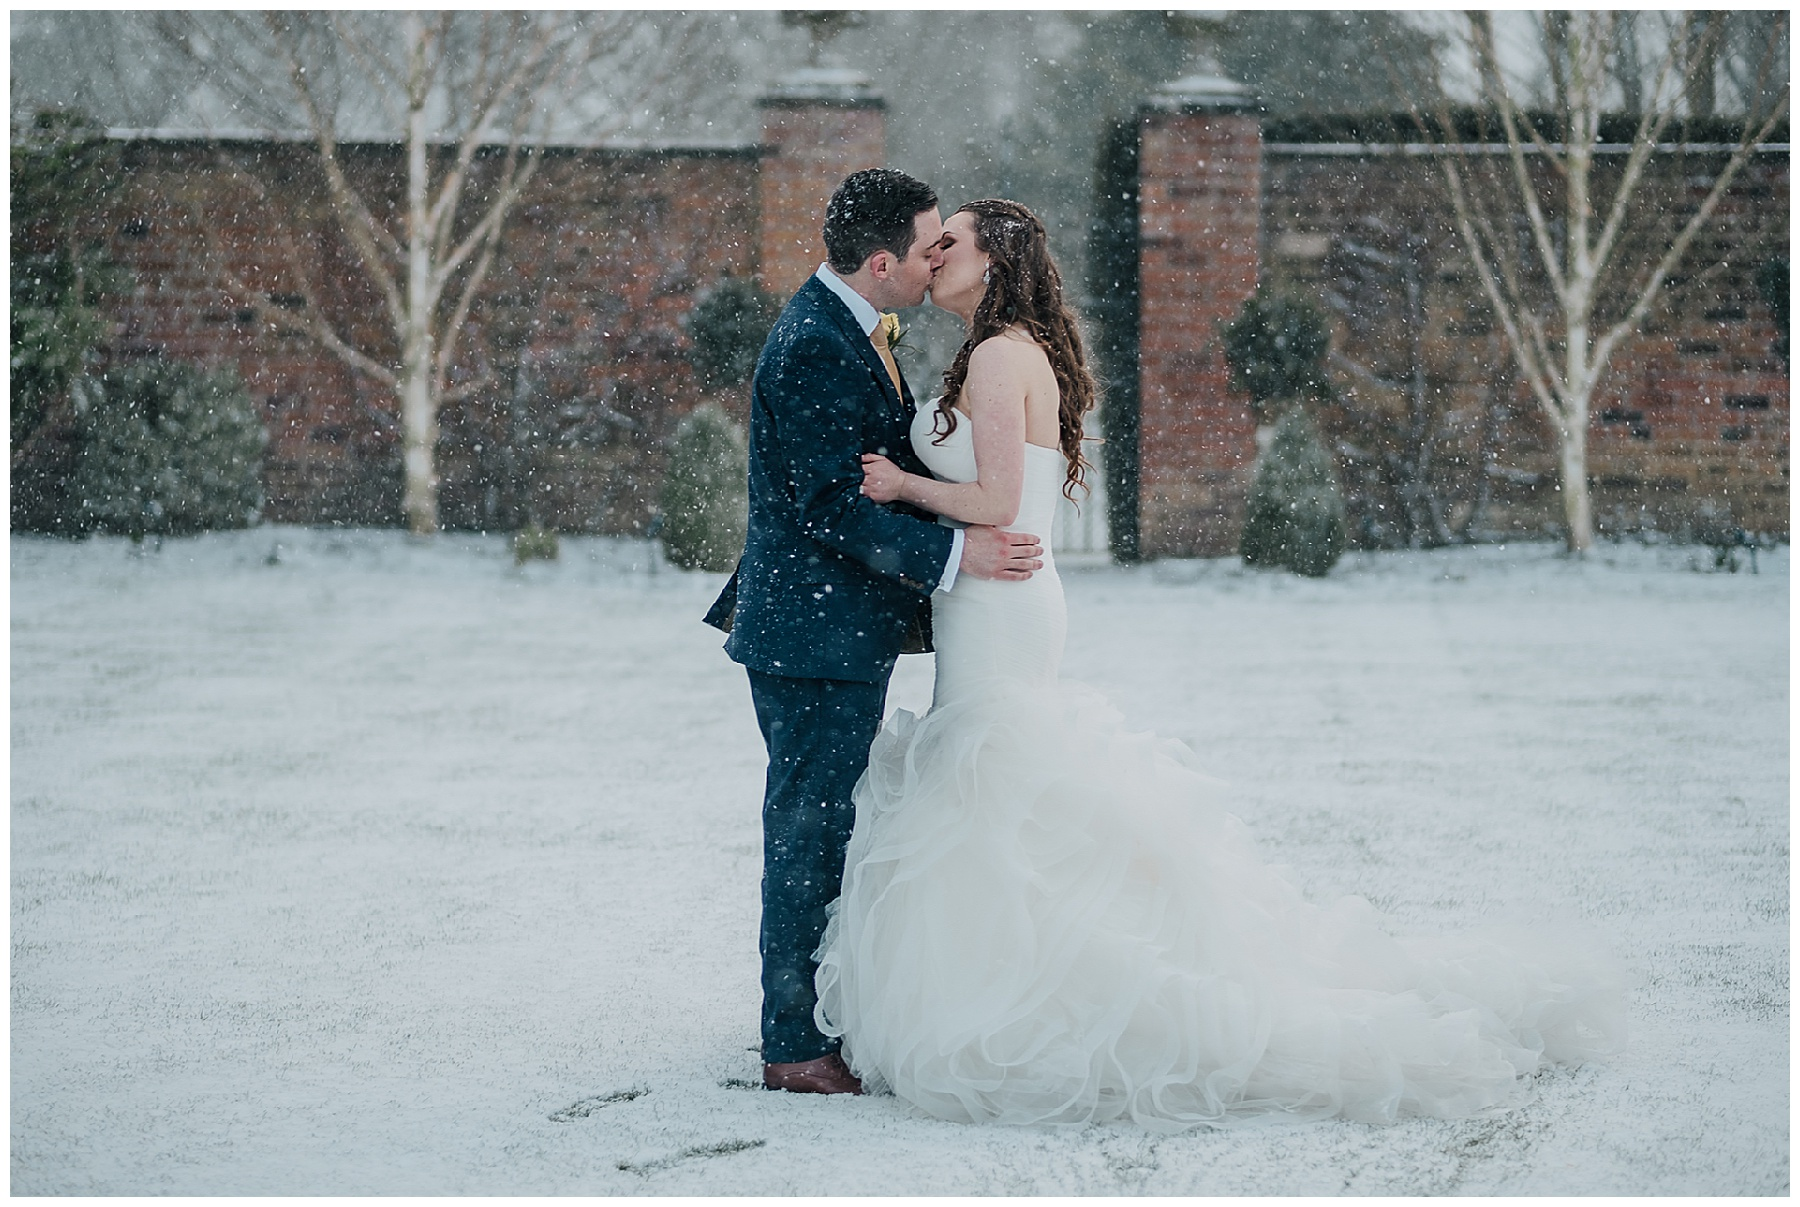 A Snowy Winter Wedding at Colshaw Hall